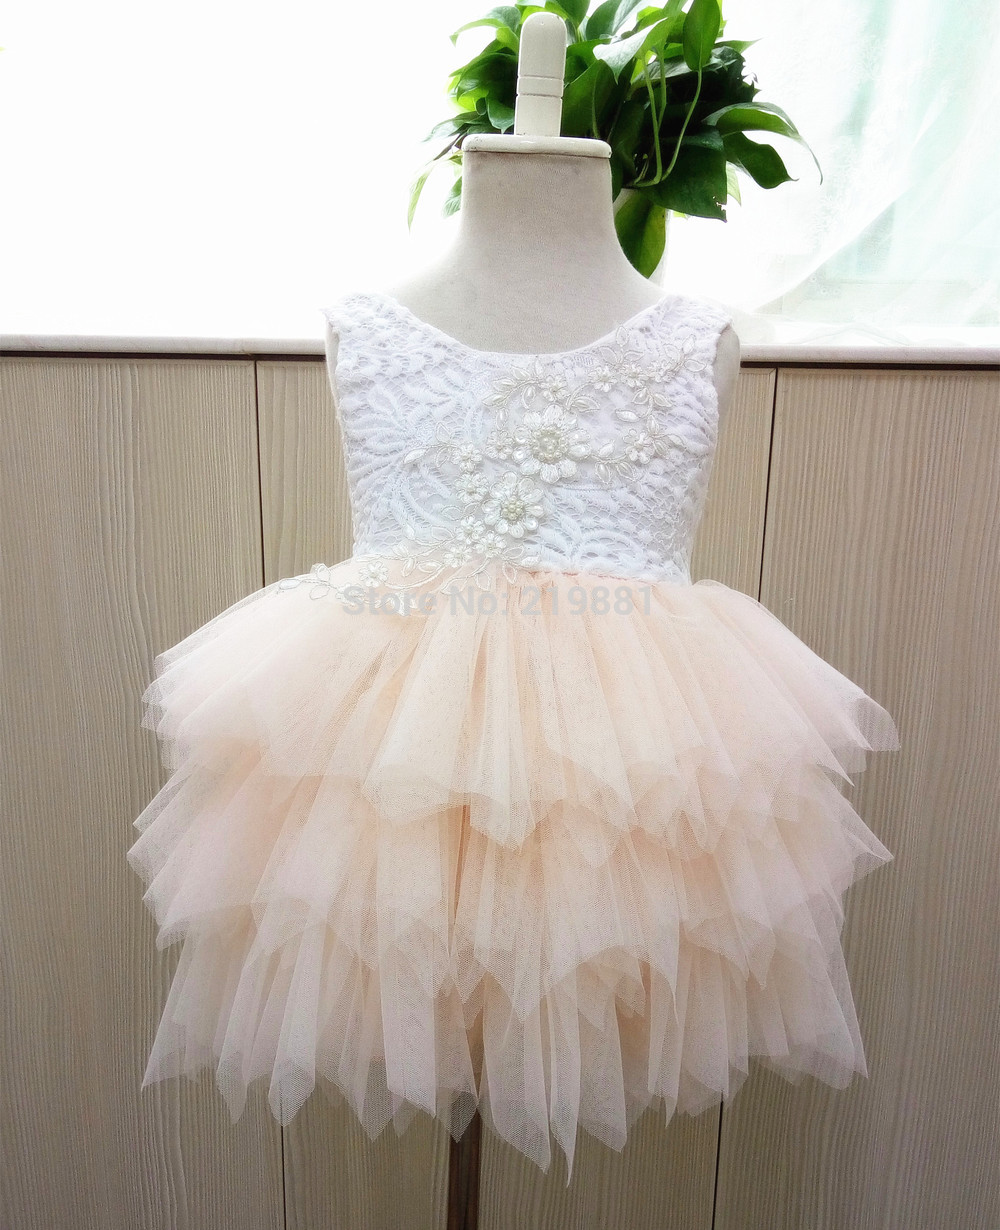 Retail 2017 Girl summer lace princess tutu dress , princess dress , summer dress girl , RM03 ems dhl free shipping toddler little girl s 2017 princess ruffles layers sleeveless lace dress summer style suspender